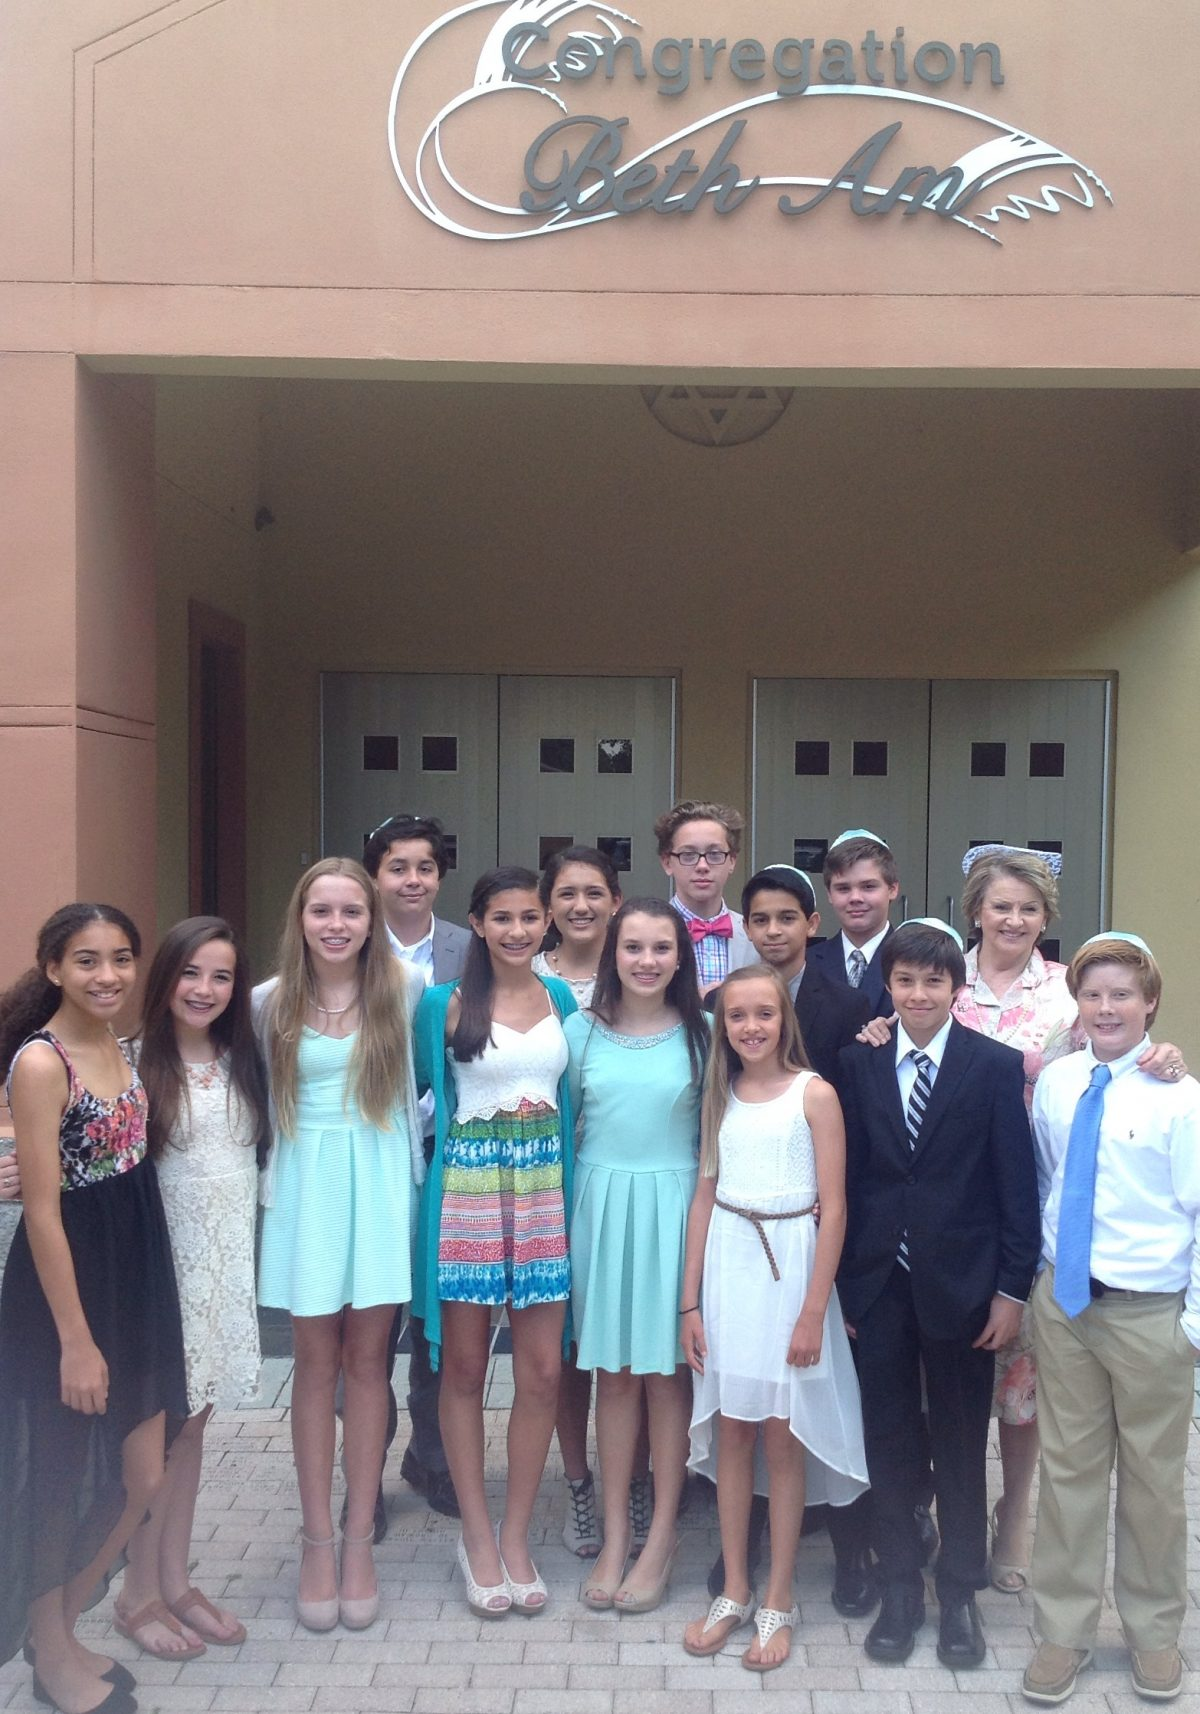 8th Graders Celebrate a Classmate's Bat Mitzvah – Diocese of Orlando